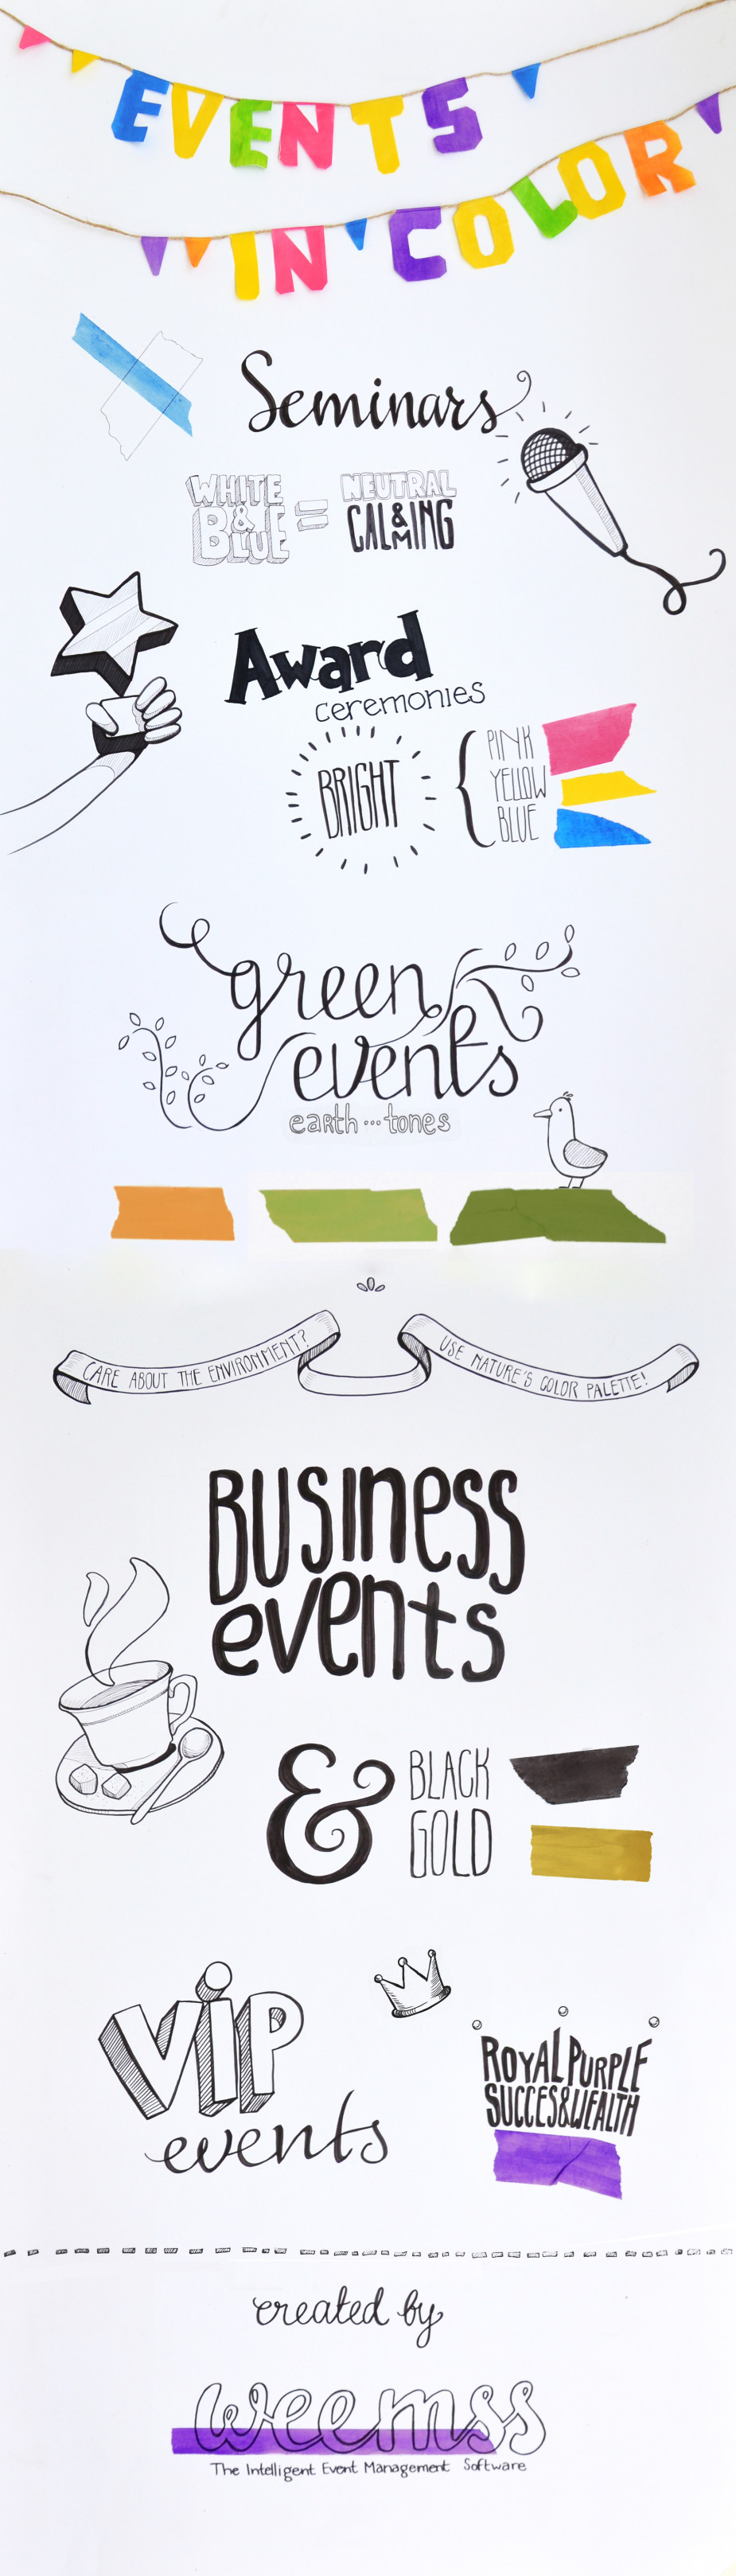 Events in Color